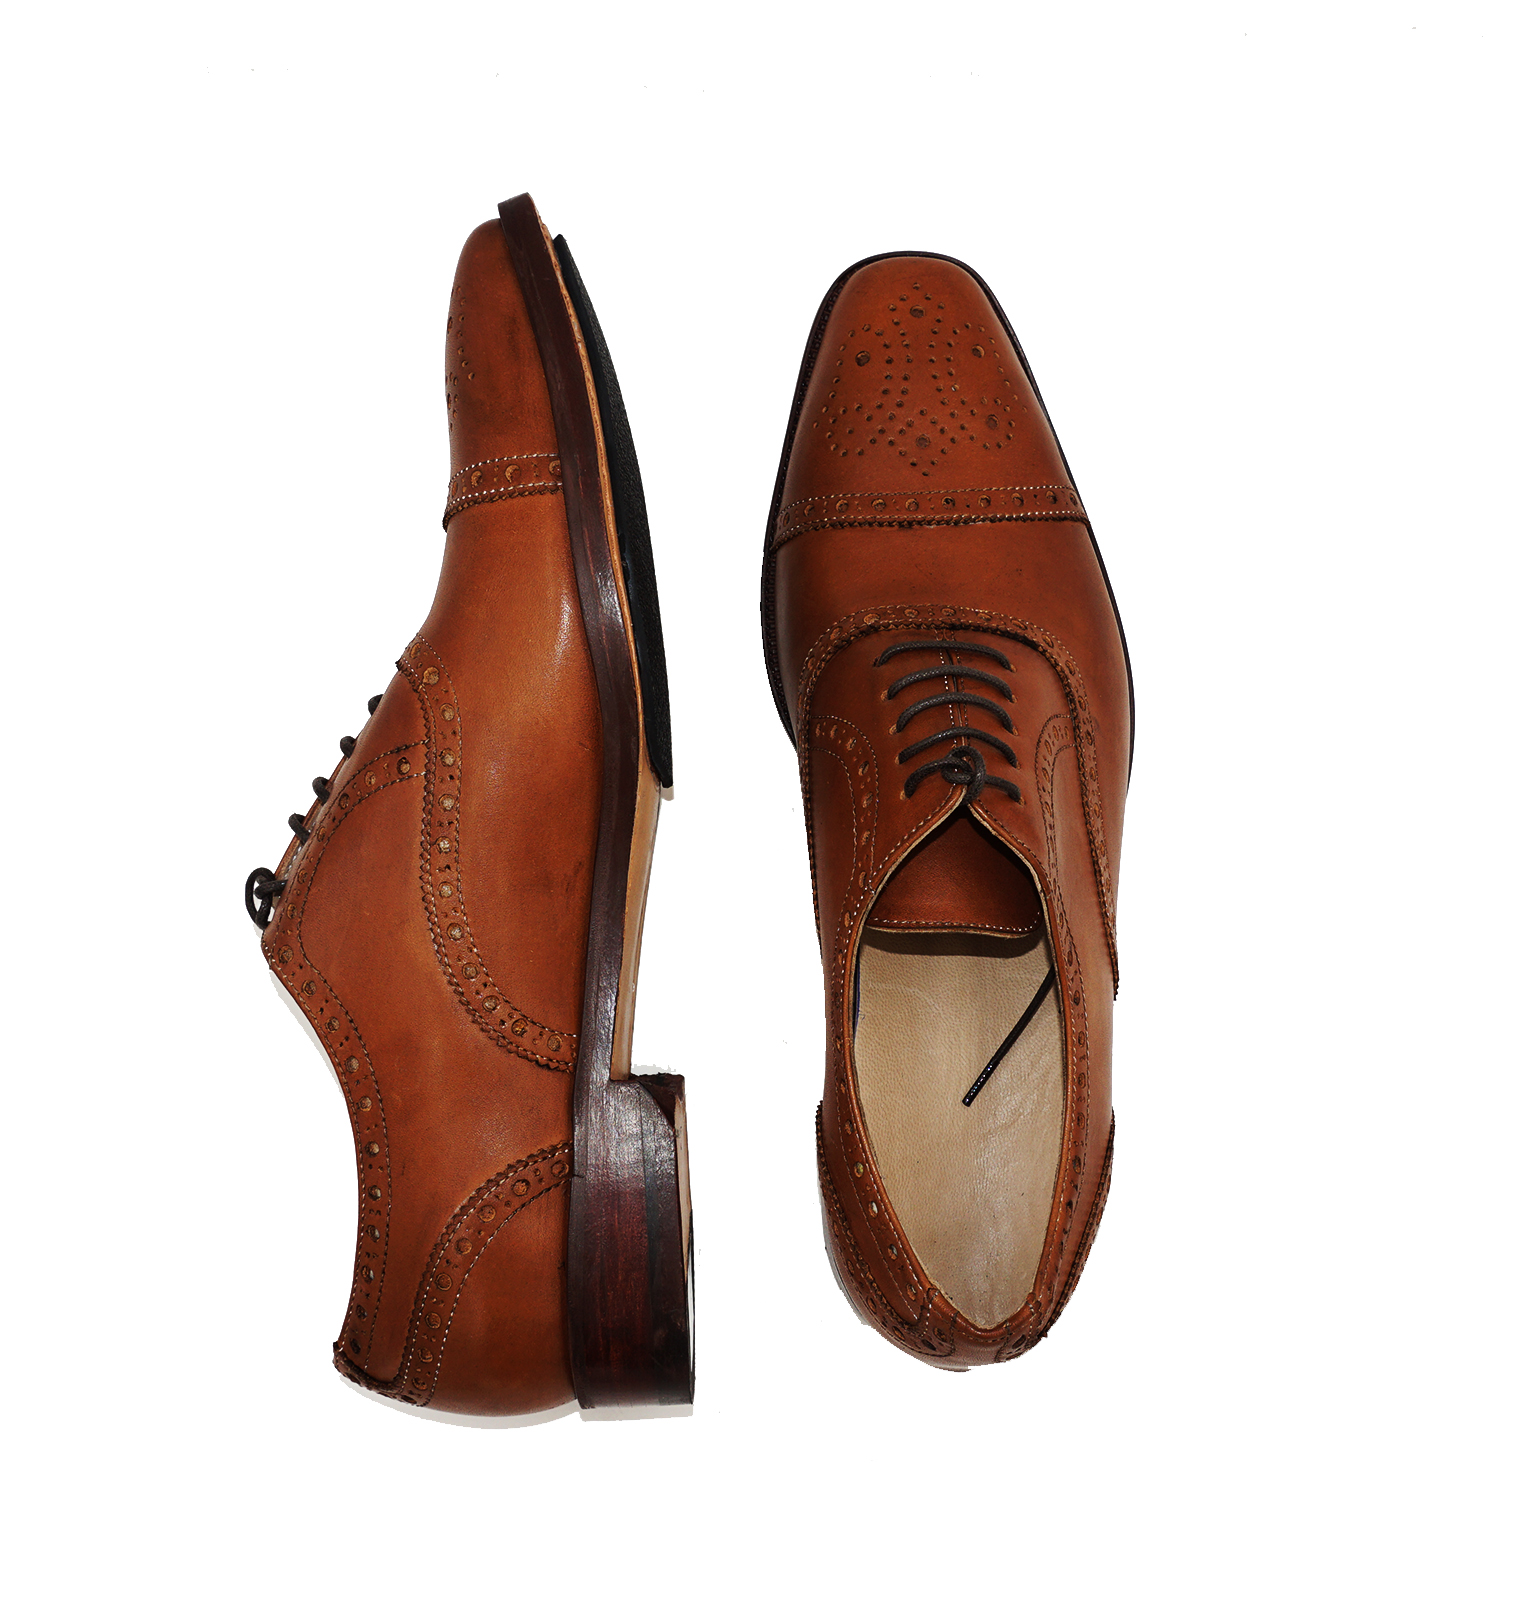 Light Tan Brown Brogue Cap Toe Oxford Formal Leather Dress Shoe